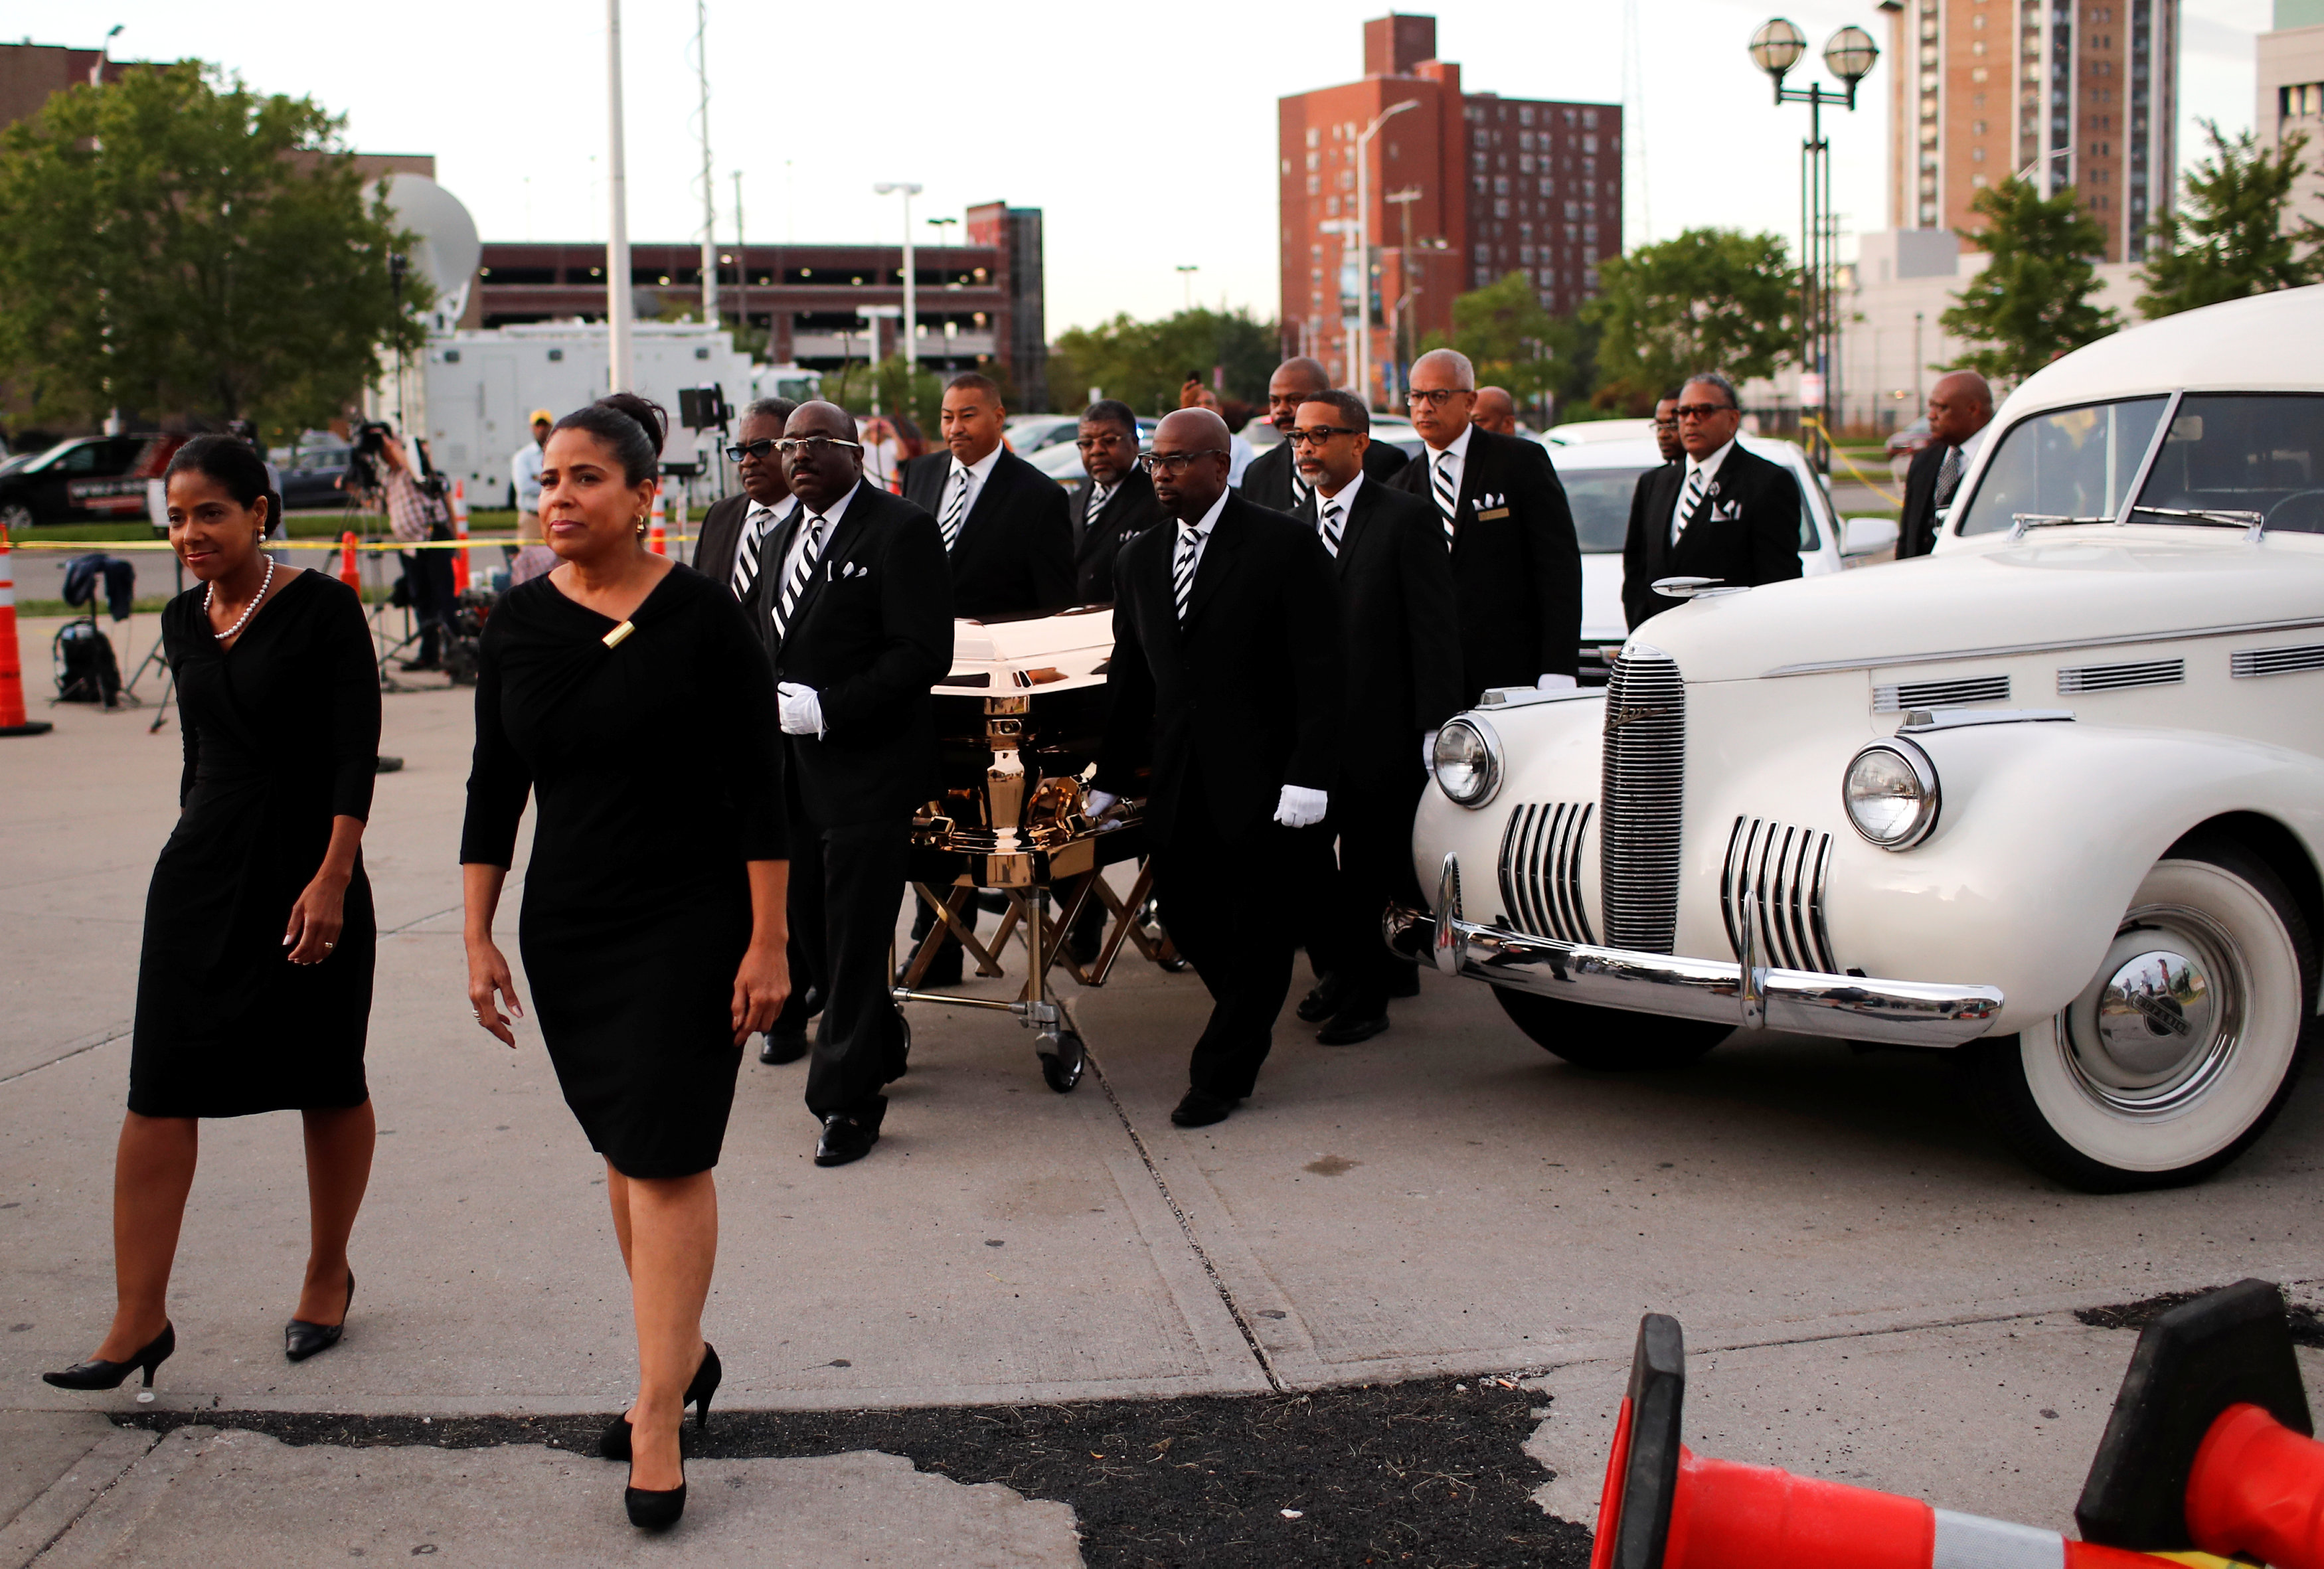 The casket carrying the late singer Aretha Franklin arrives at the Charles H. Wright Museum of African American History for the second day of a public viewing in Detroit, Michigan, U.S., August 29, 2018. REUTERS/Mike Segar